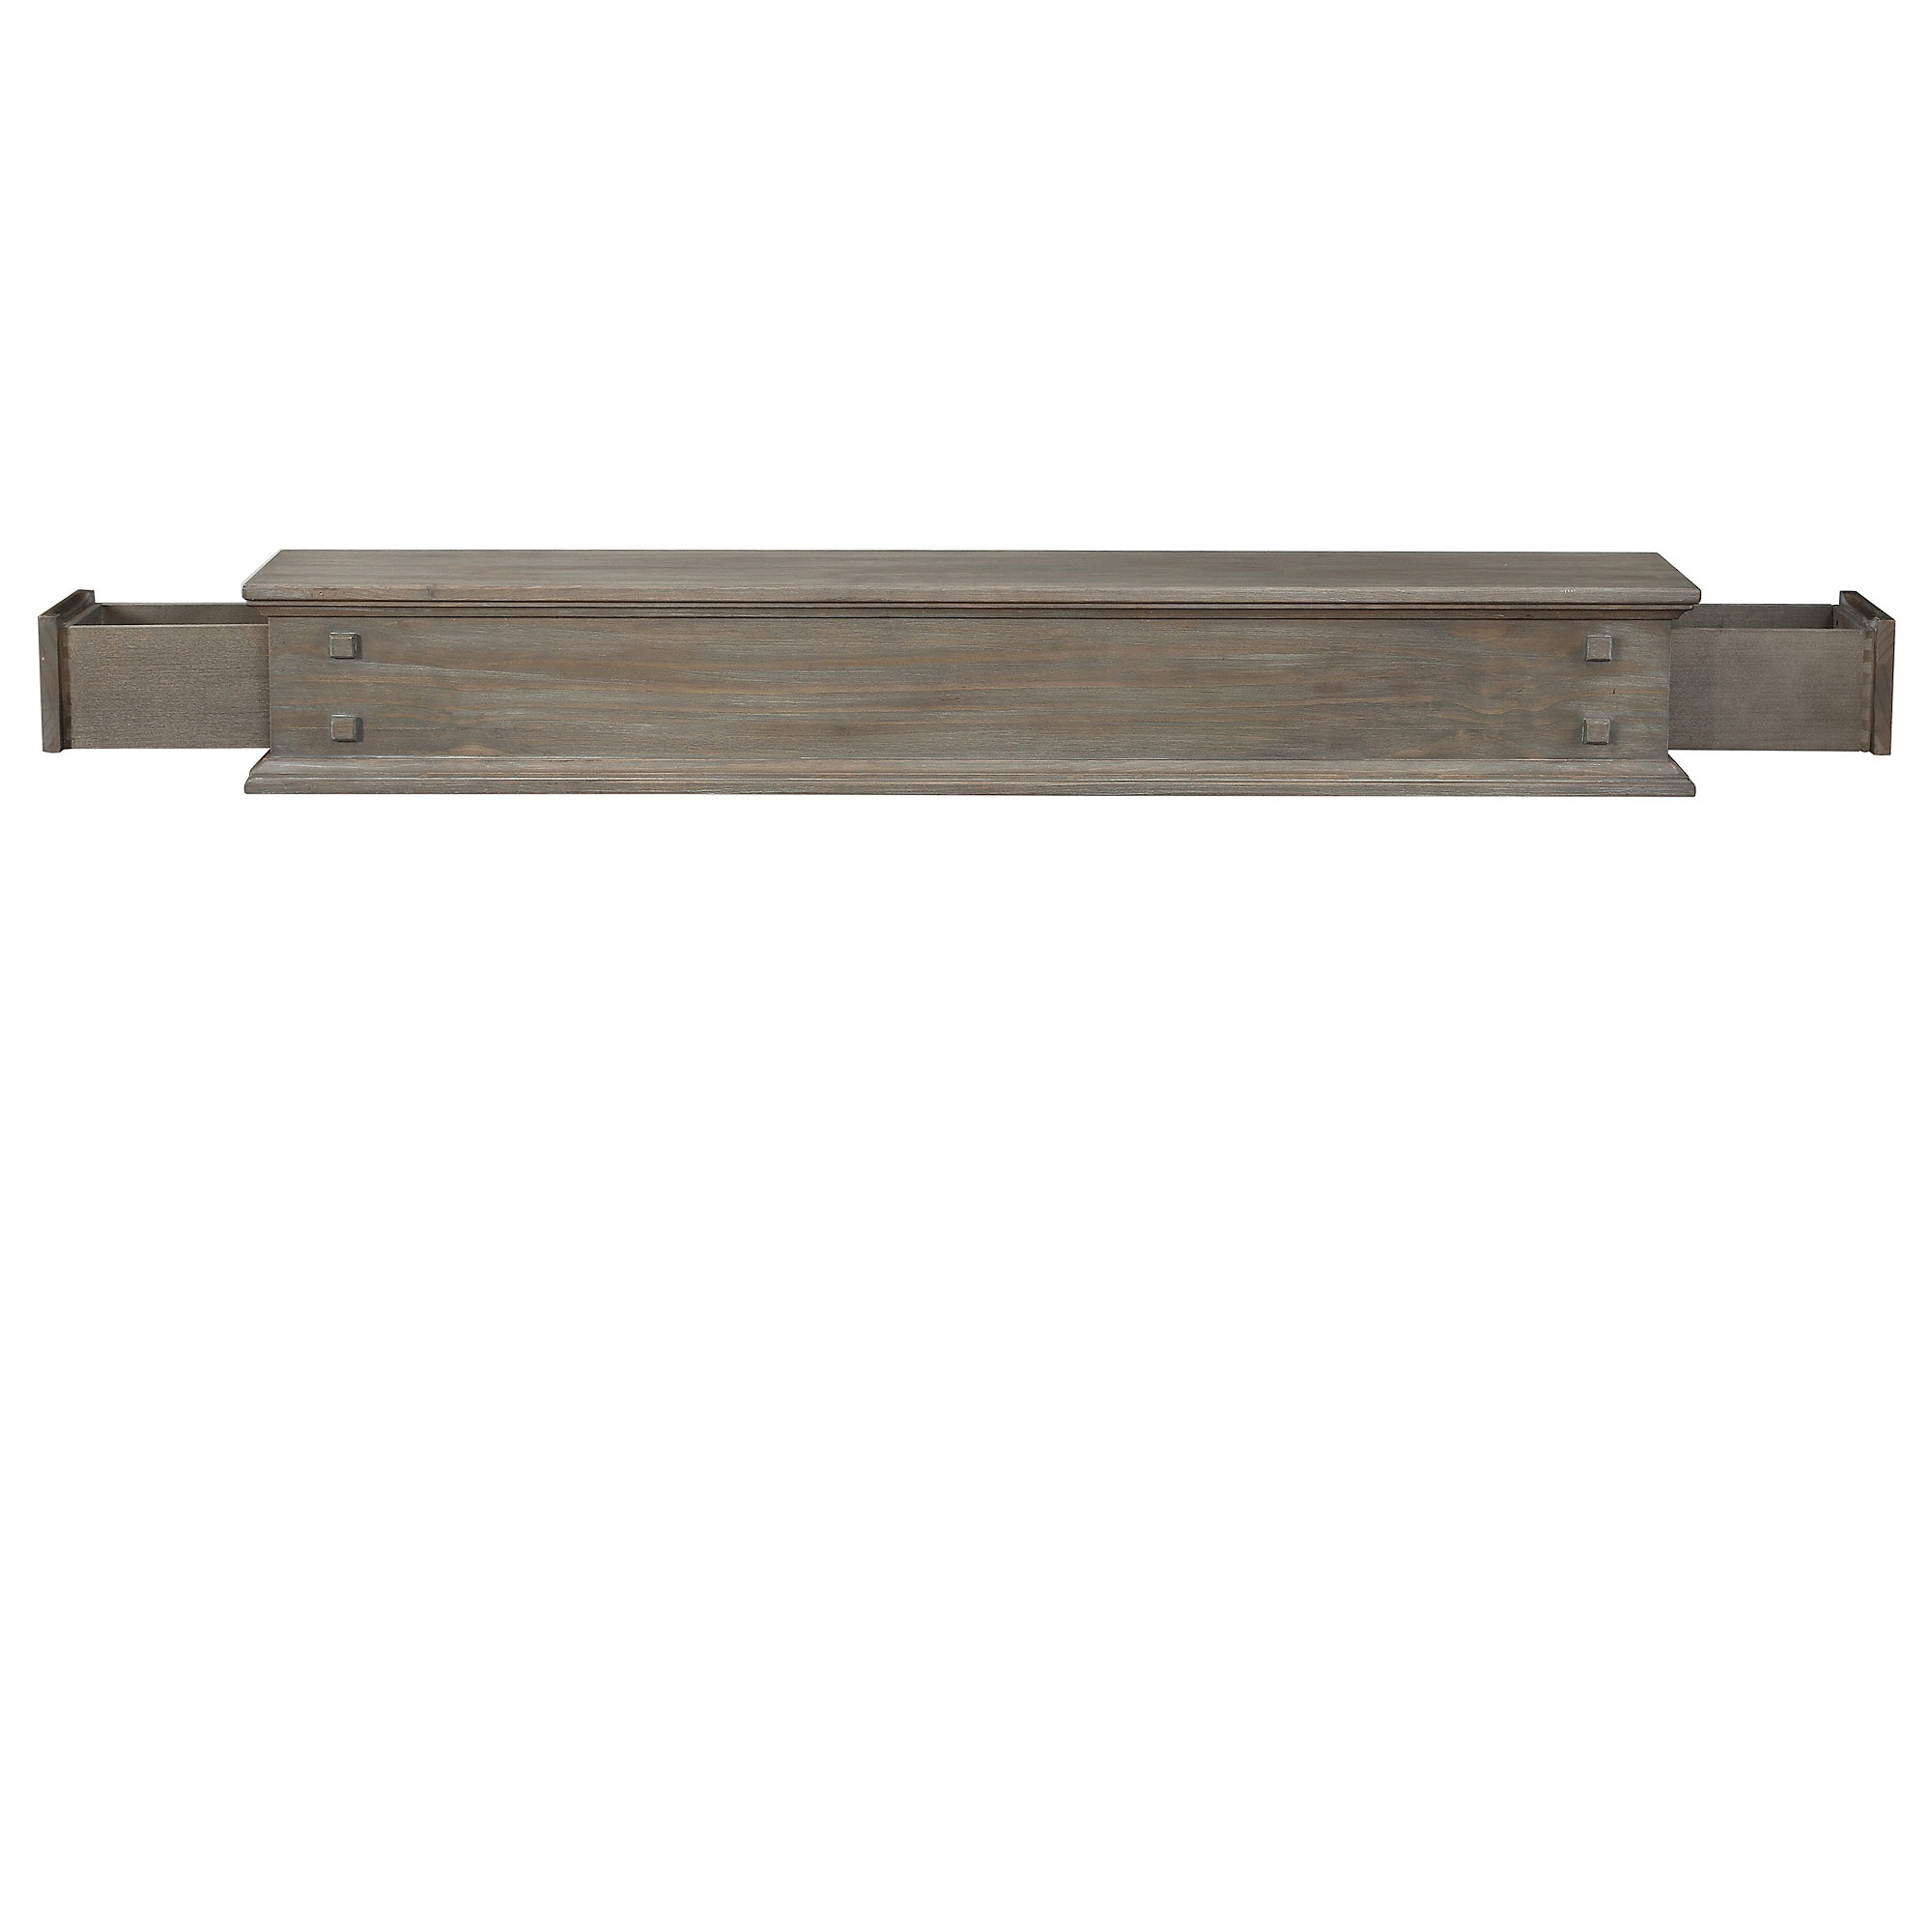 Wood stone mantels and shelf mantels - Mantelpieces fireplaces ...